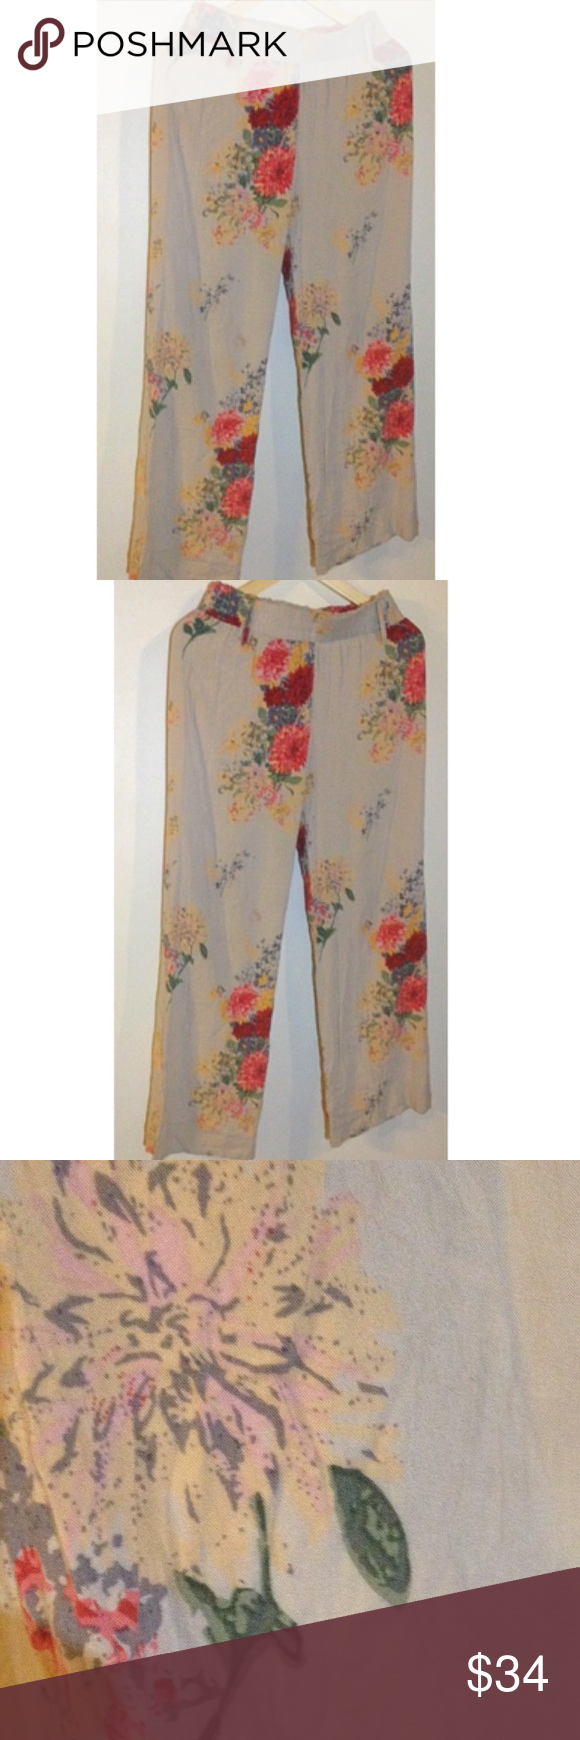 ❤️MAKE OFFER Harlem Pants Loose Floral Harlem Pants Gorgeous Print in gray size small like new stain free blemish free perfect for fall !! Super cute and beautiful pattern Soho Pants Track Pants & Joggers